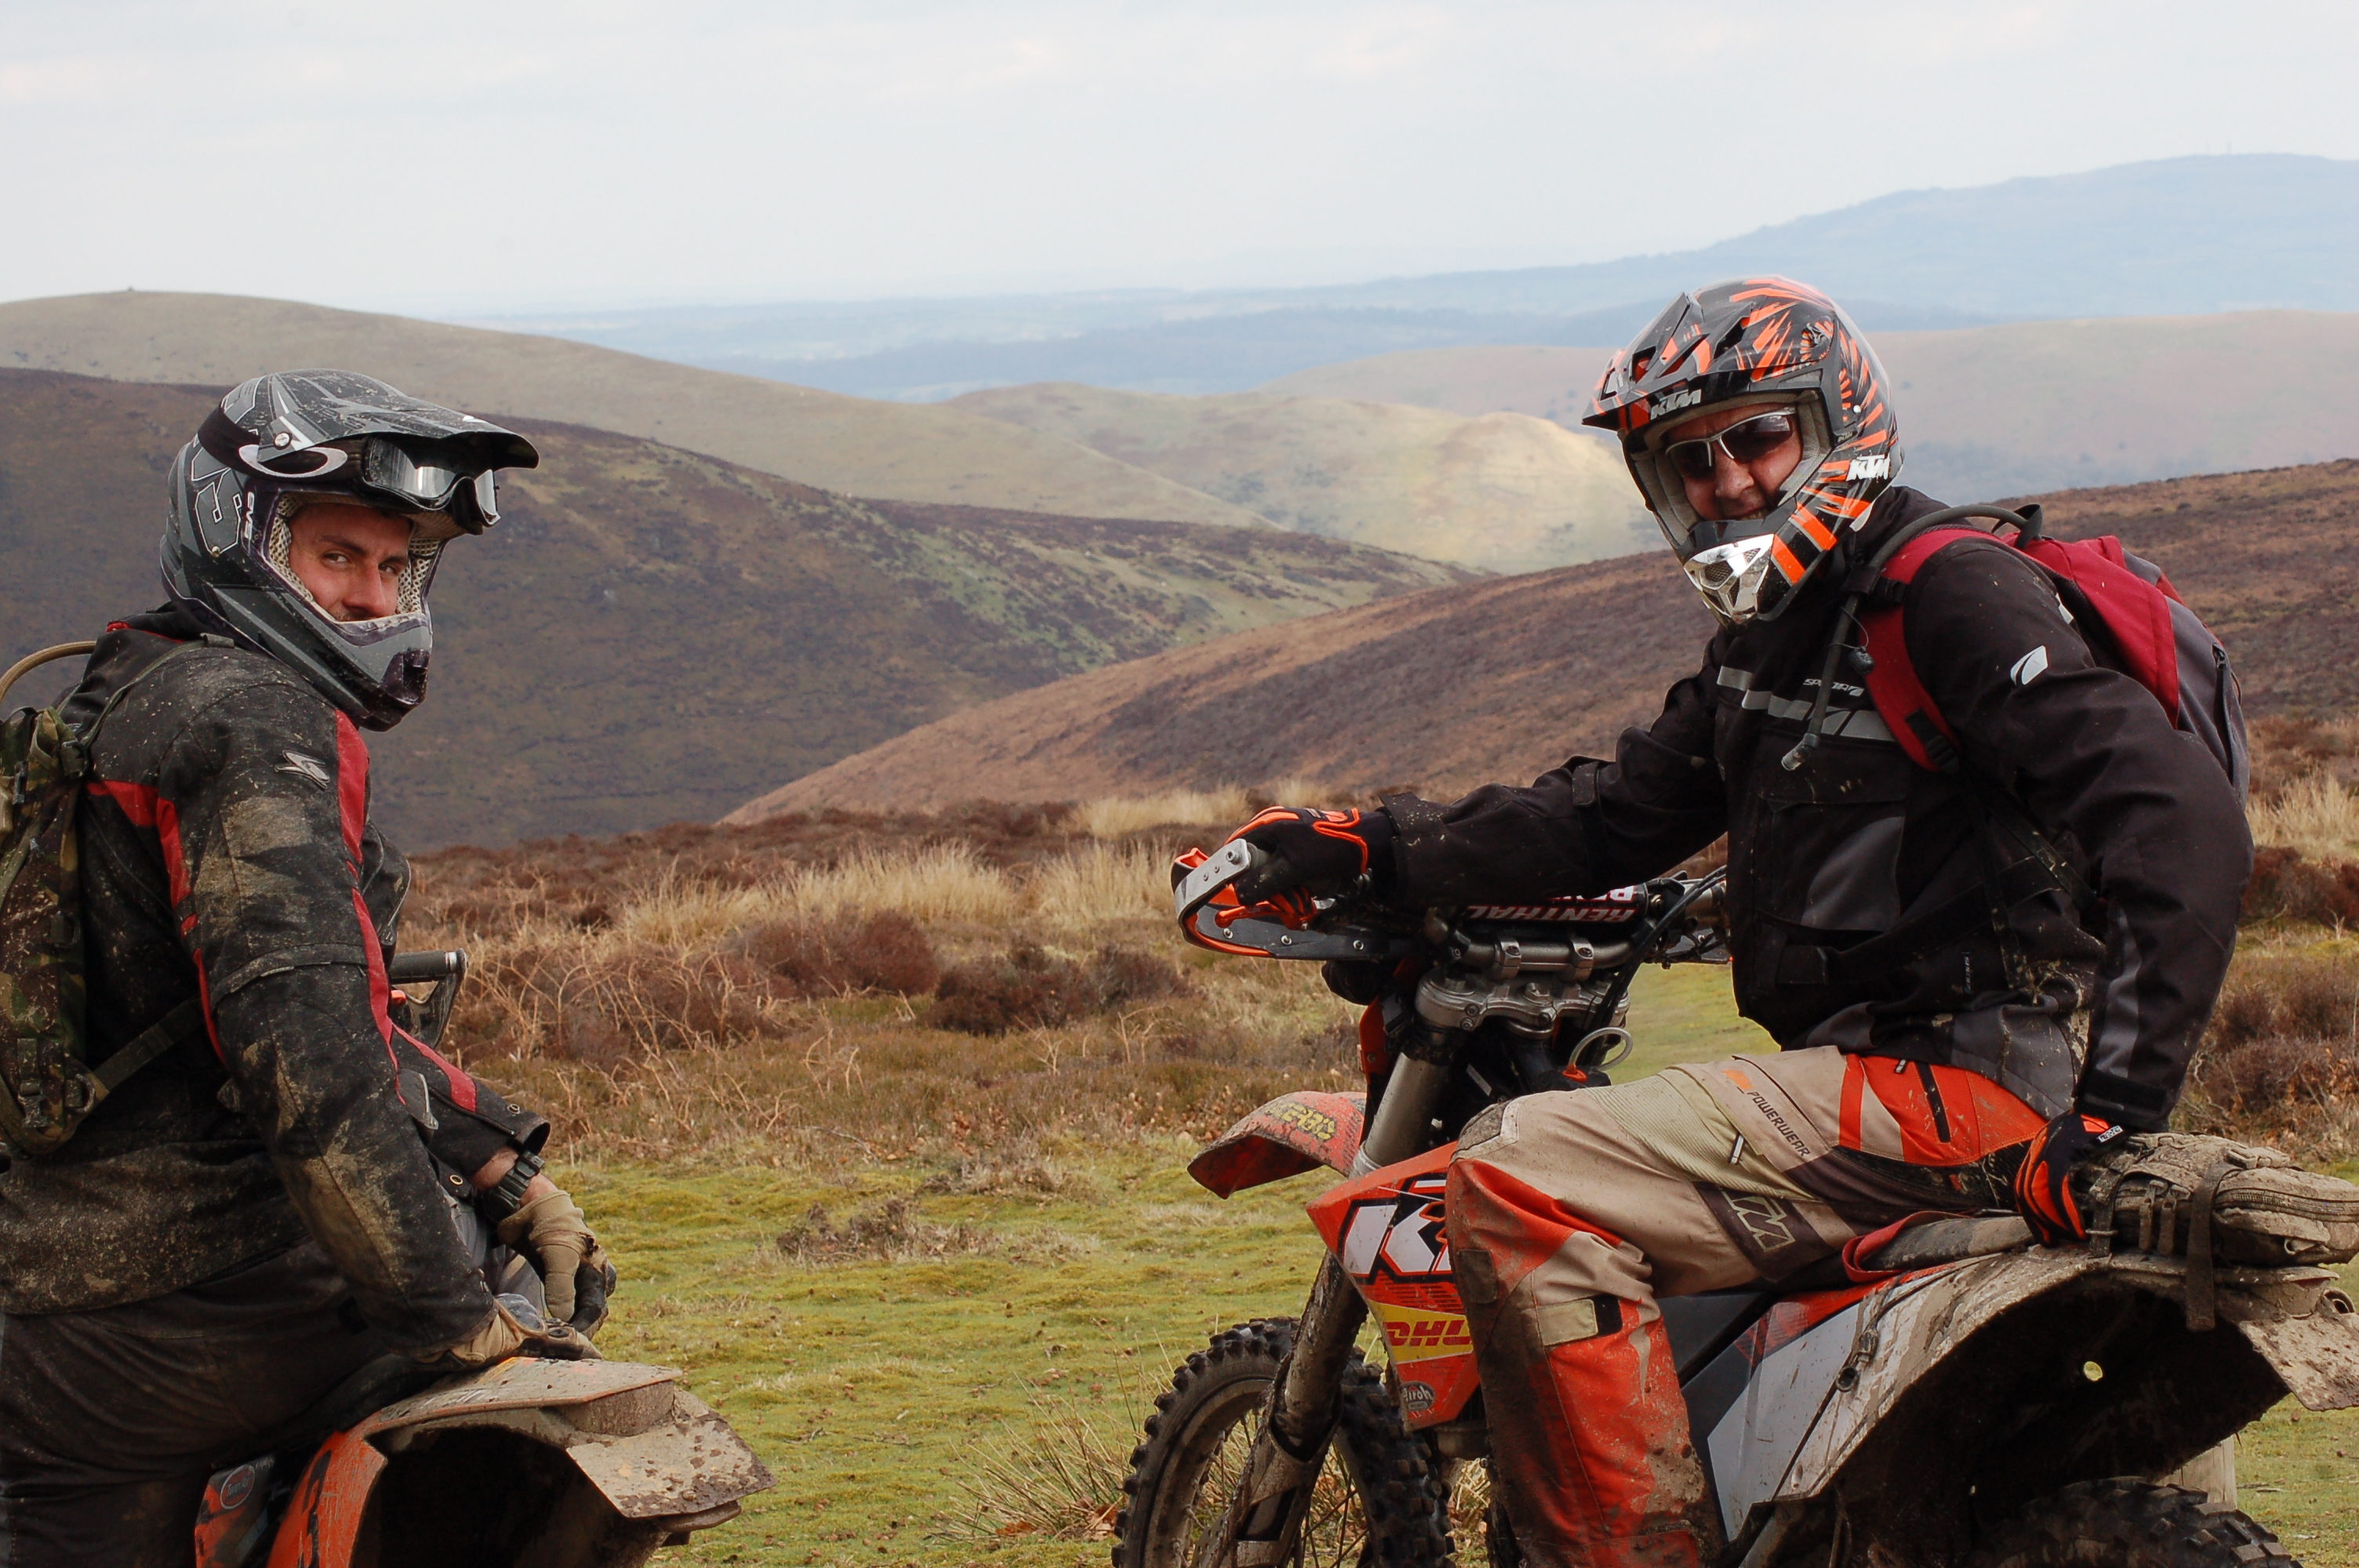 Trail Riding In Shropshire Adventurerideblog Choccy Block Trf Radio Schematic Diagram Alex And Tim Enjoy A Quick Break Take The Beauty Of View East